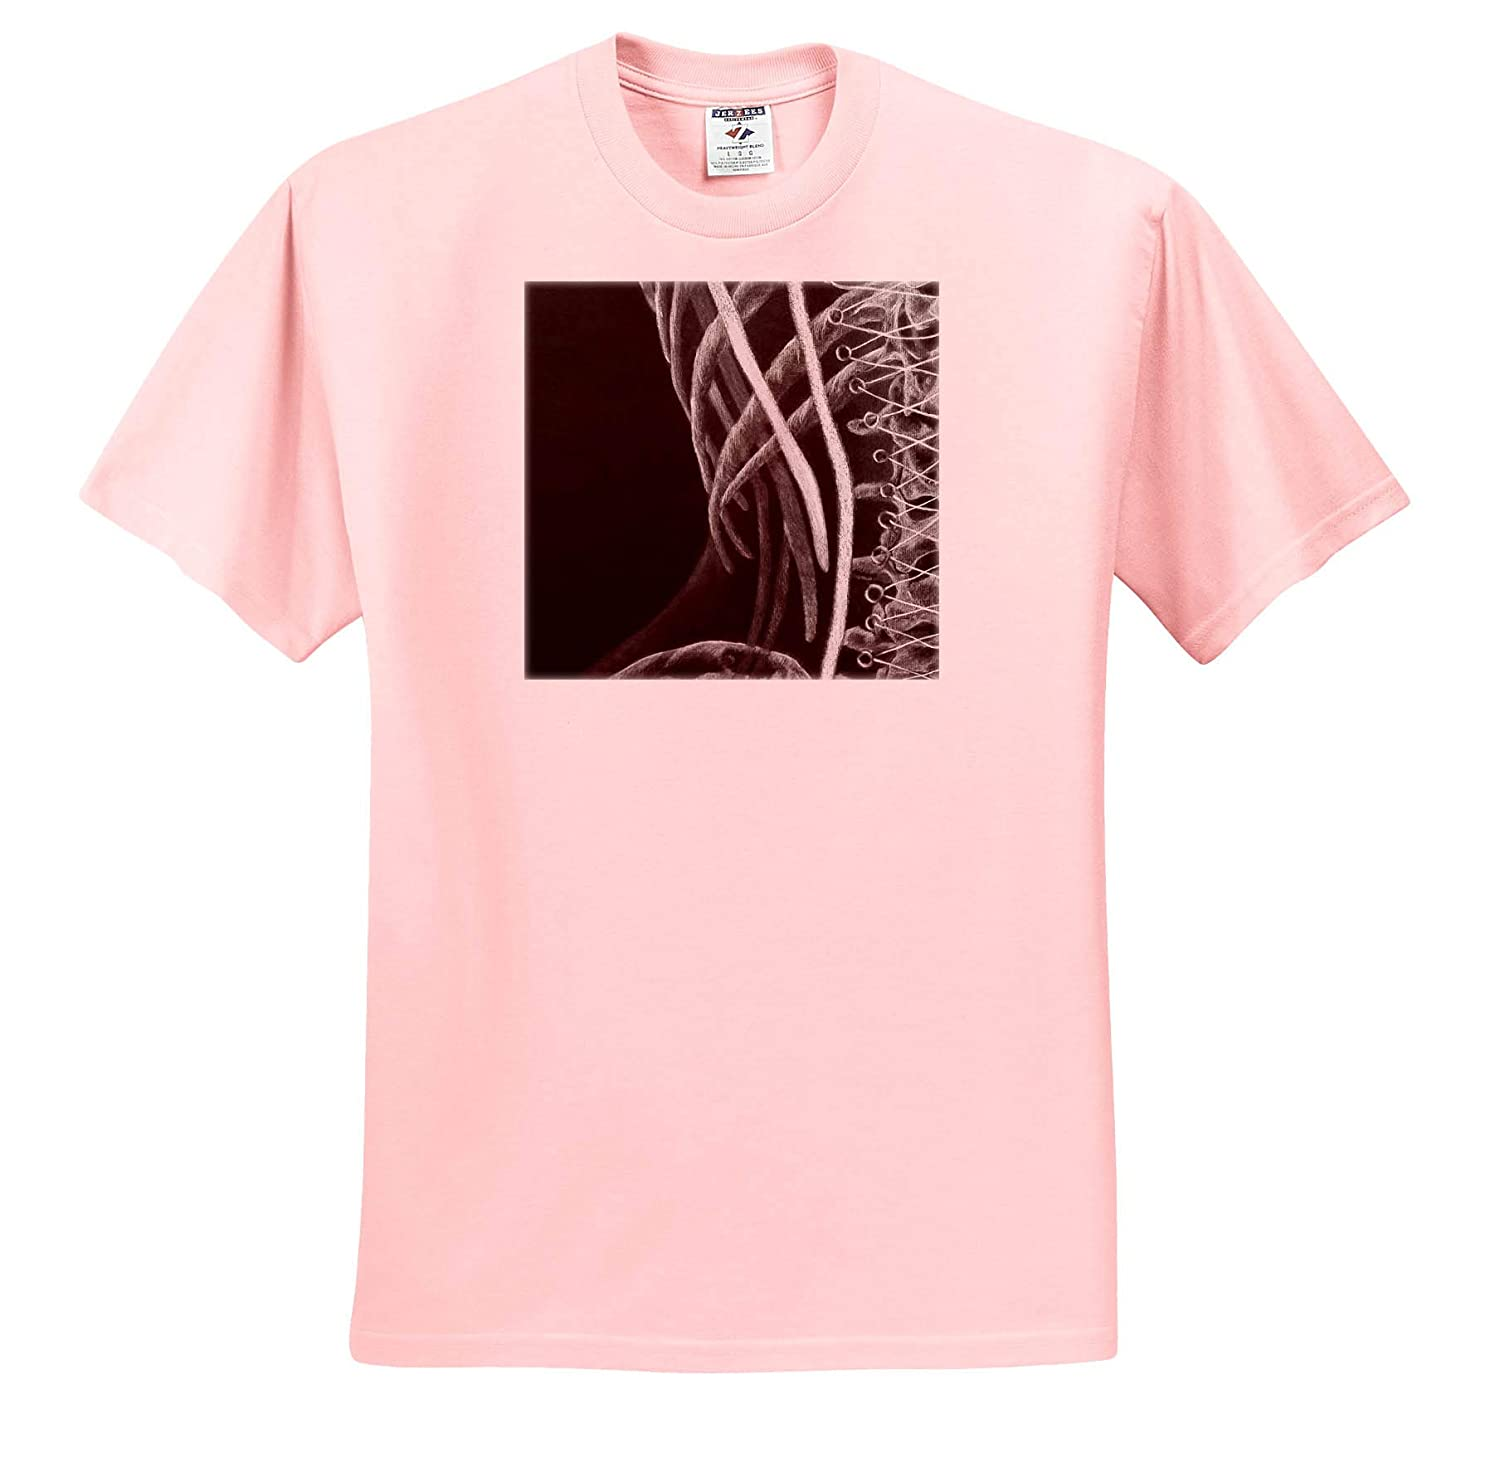 ts/_309838 Conte Drawing Ribs of Corset Conte on Black Adult T-Shirt XL 3dRose ChristopherCrouchArt